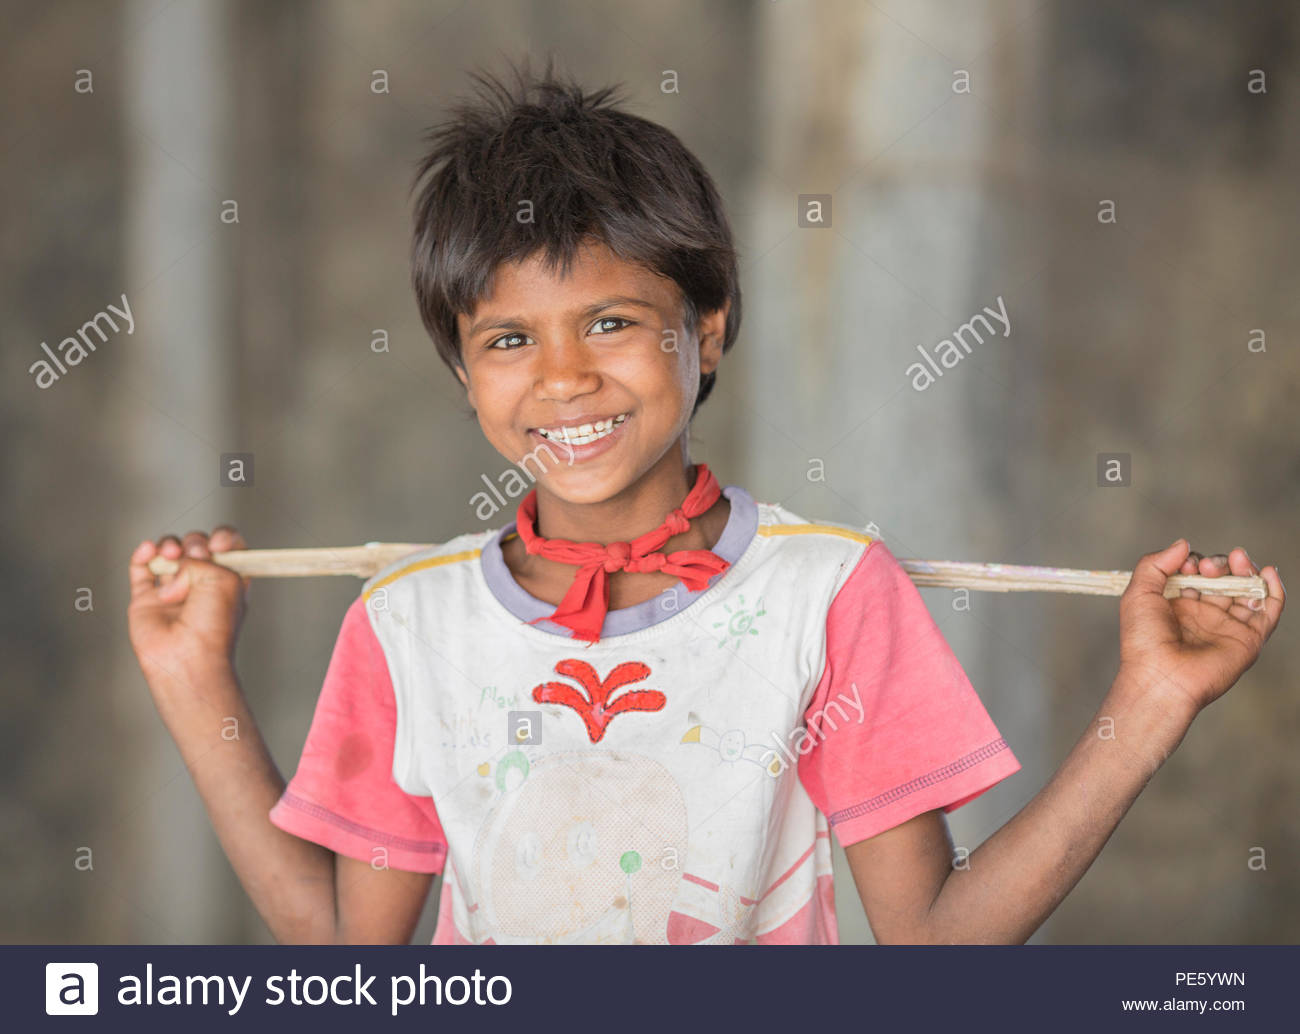 SARNESWARJI, RAJASTHAN INDIA - MARCH 17 , 2016: unidentified happy Indian rural children at their village, Sarneswarji, Rajasthan, India - Stock Image